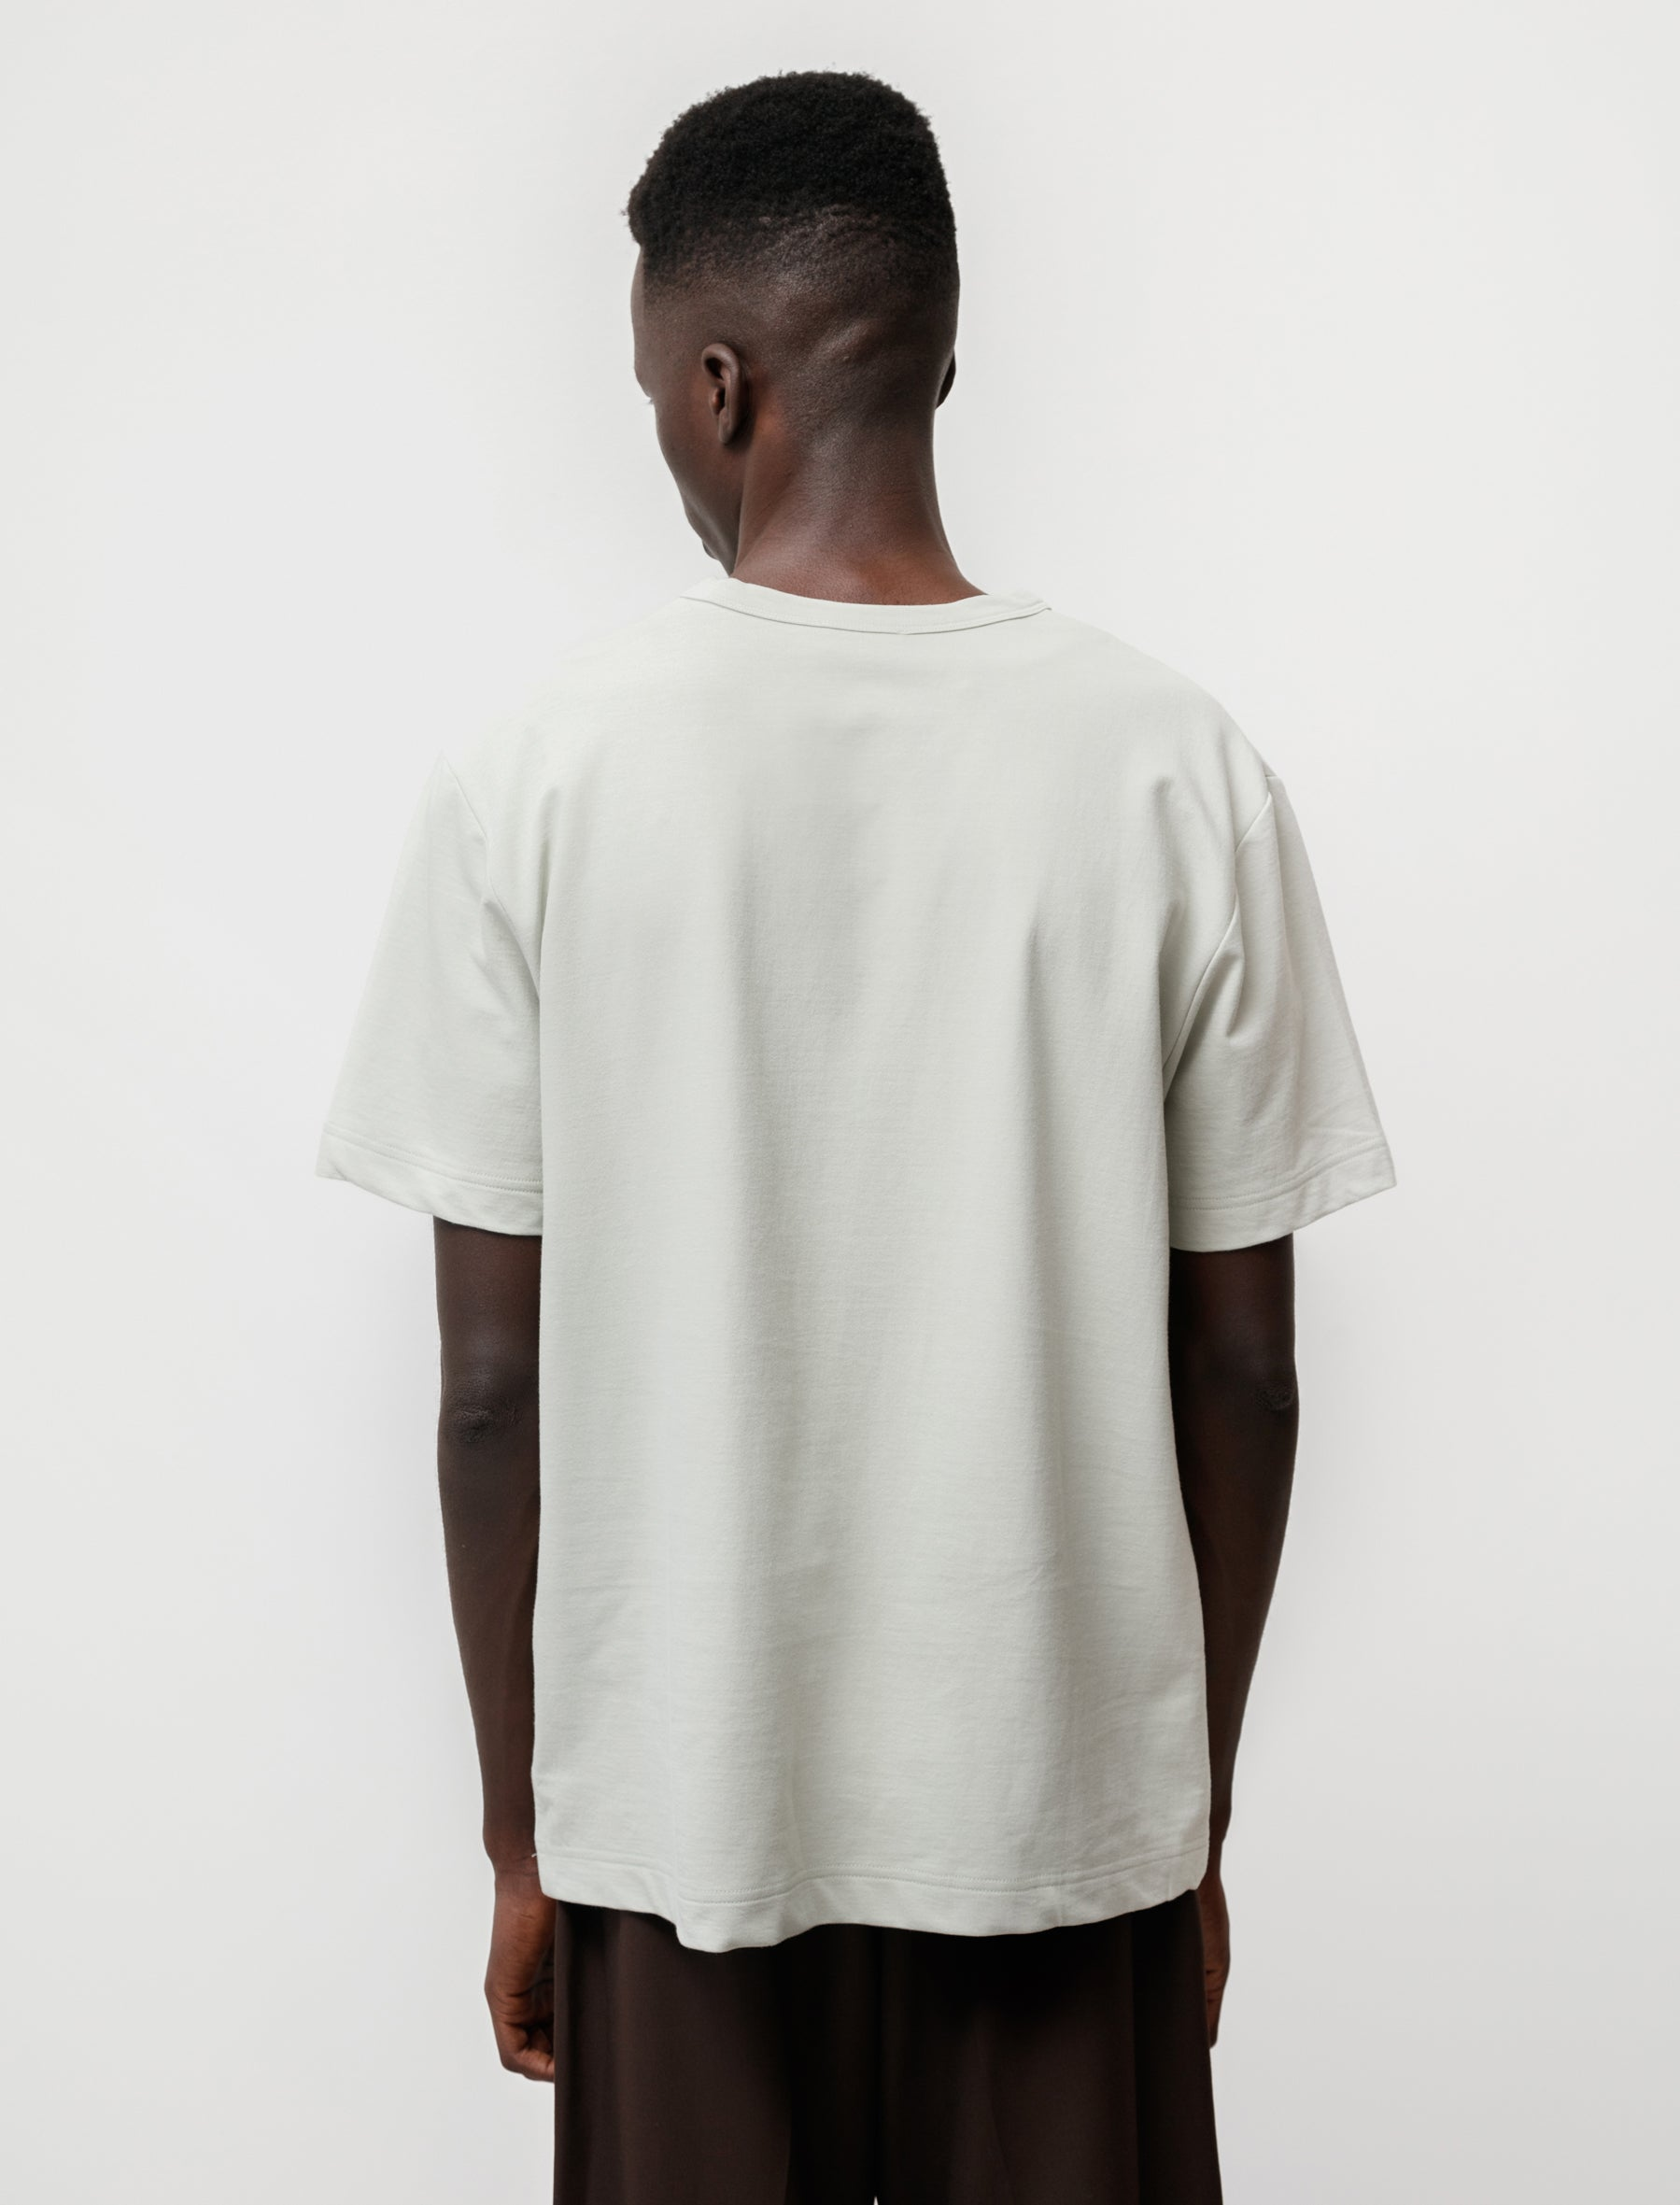 niuhans Dry Touch Cotton Inlay S/S Pocket Tee Moss